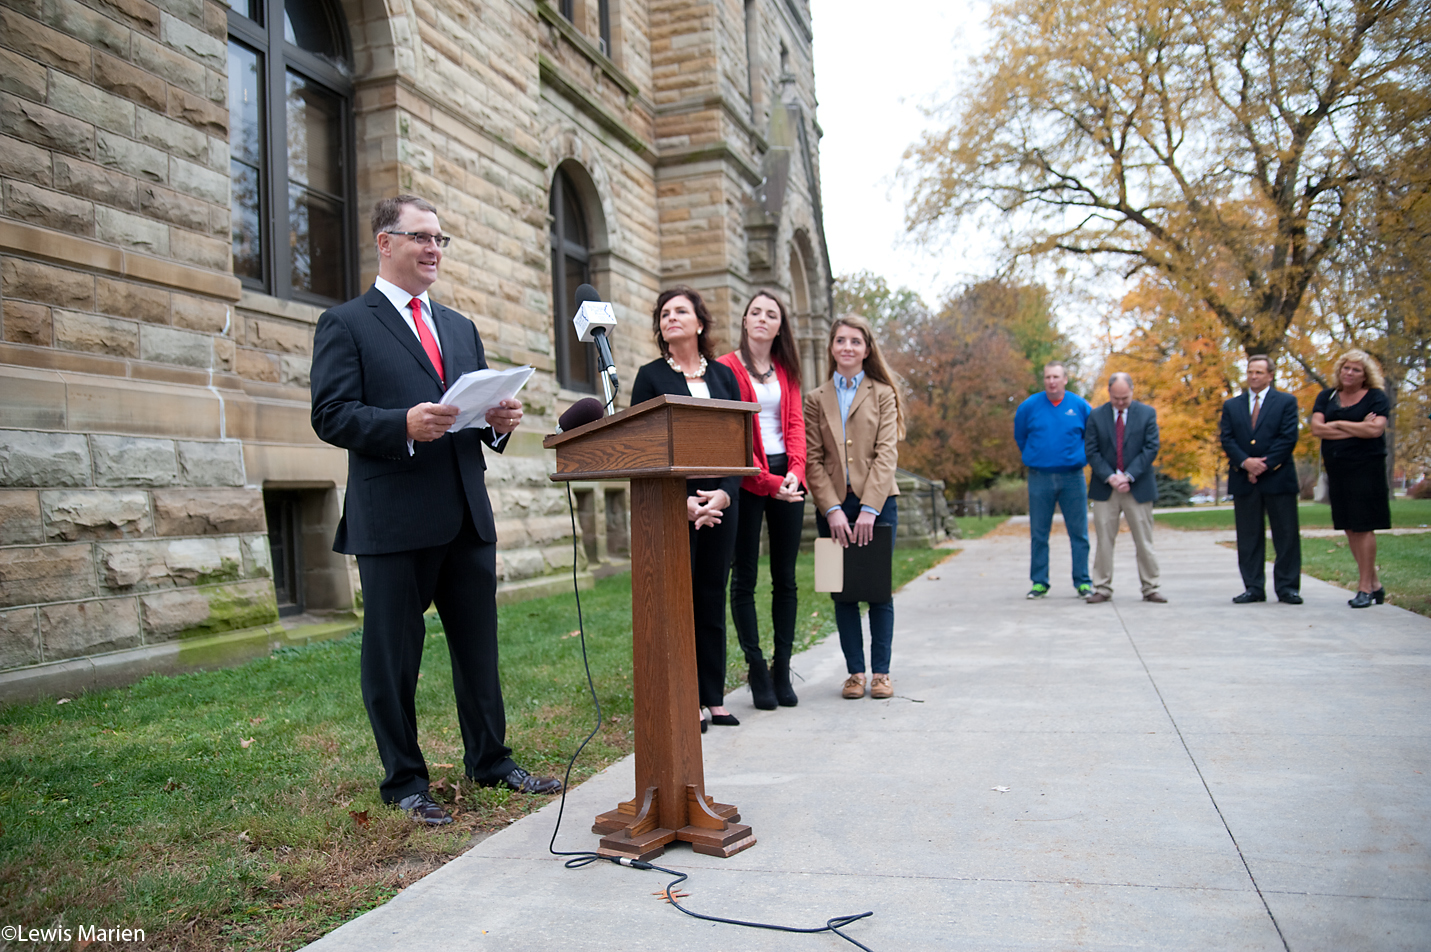 Mike DeSutter, left, of Woodhull, Ill., announces that he will seek the Republican nomination for state representative of the 74th District on Nov. 5 outside the Knox County Courthouse in Galesburg, Ill.